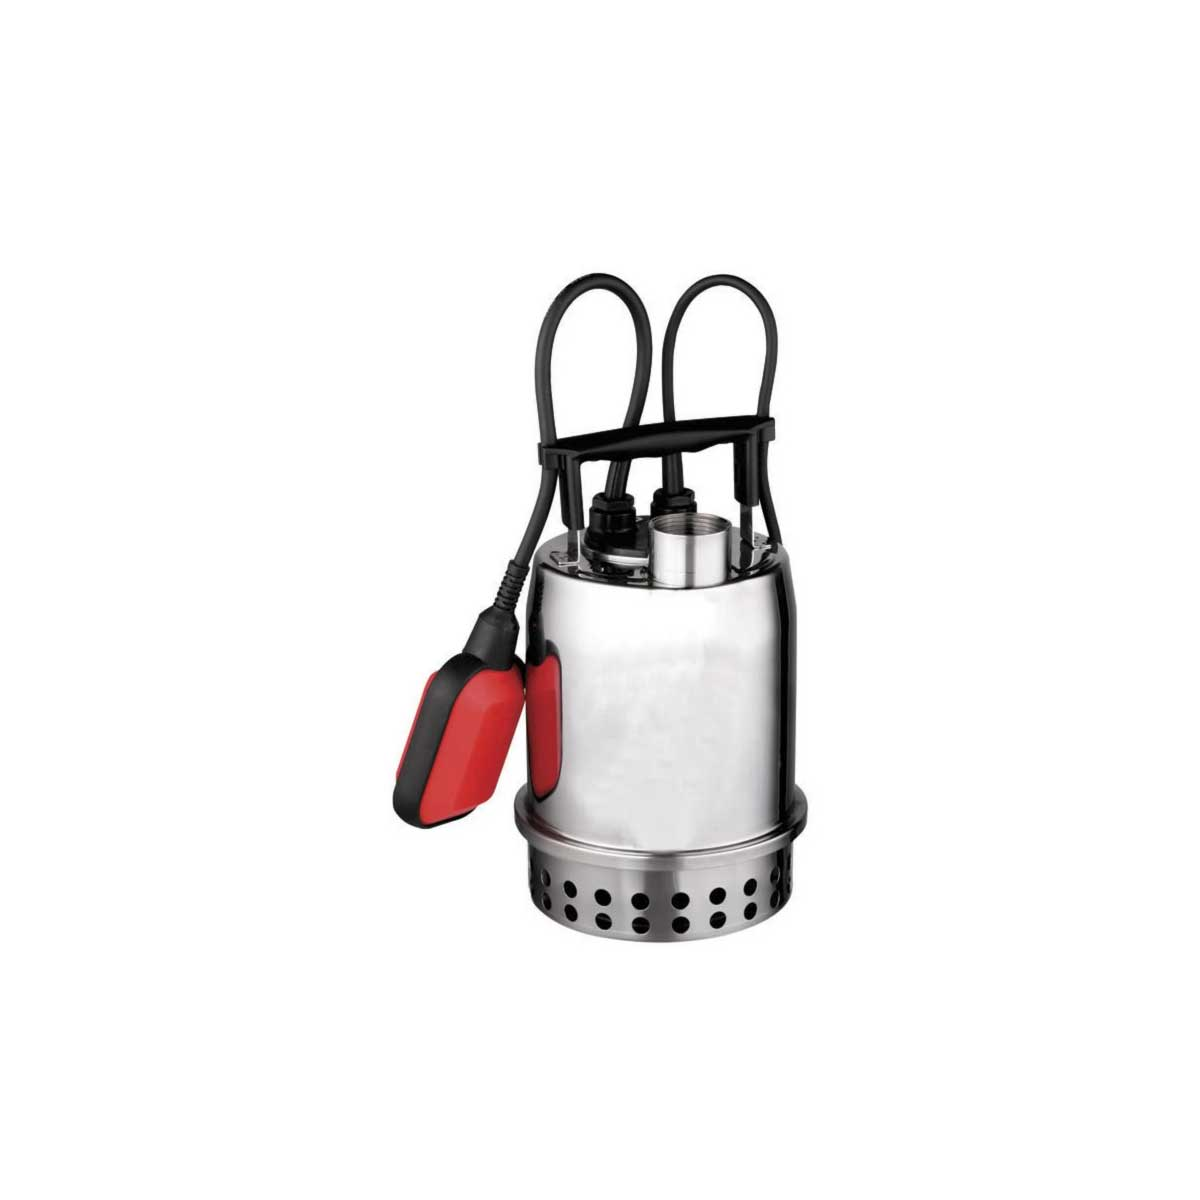 Honda WSP33K1AA Submersible Water Pump